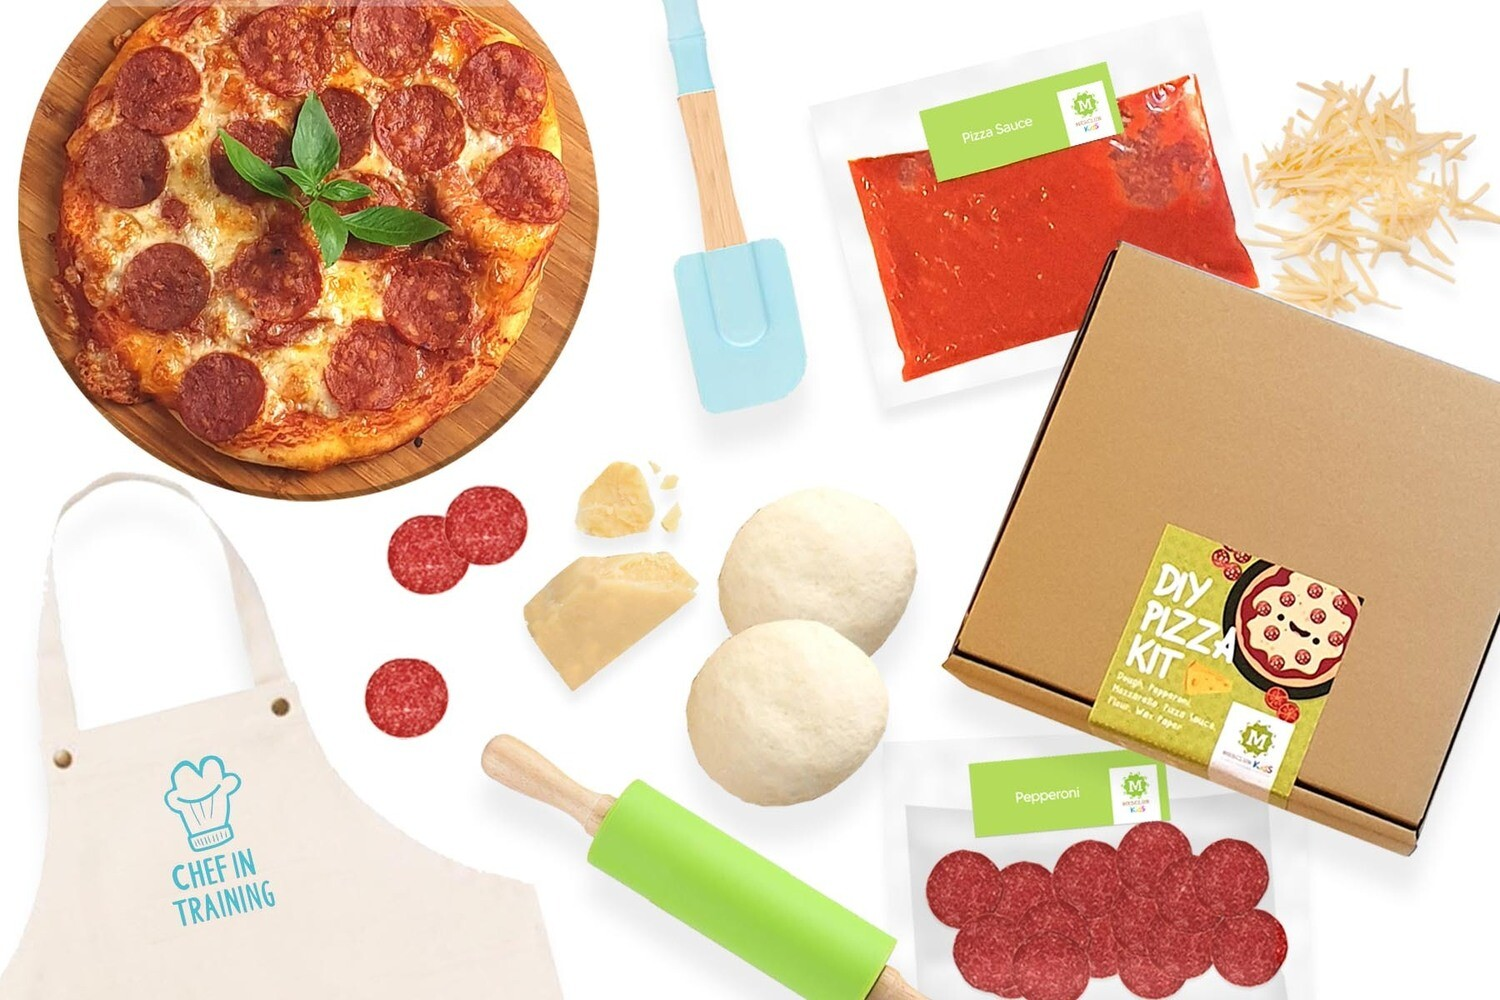 Mesclun KIDS DIY Pizza Kit